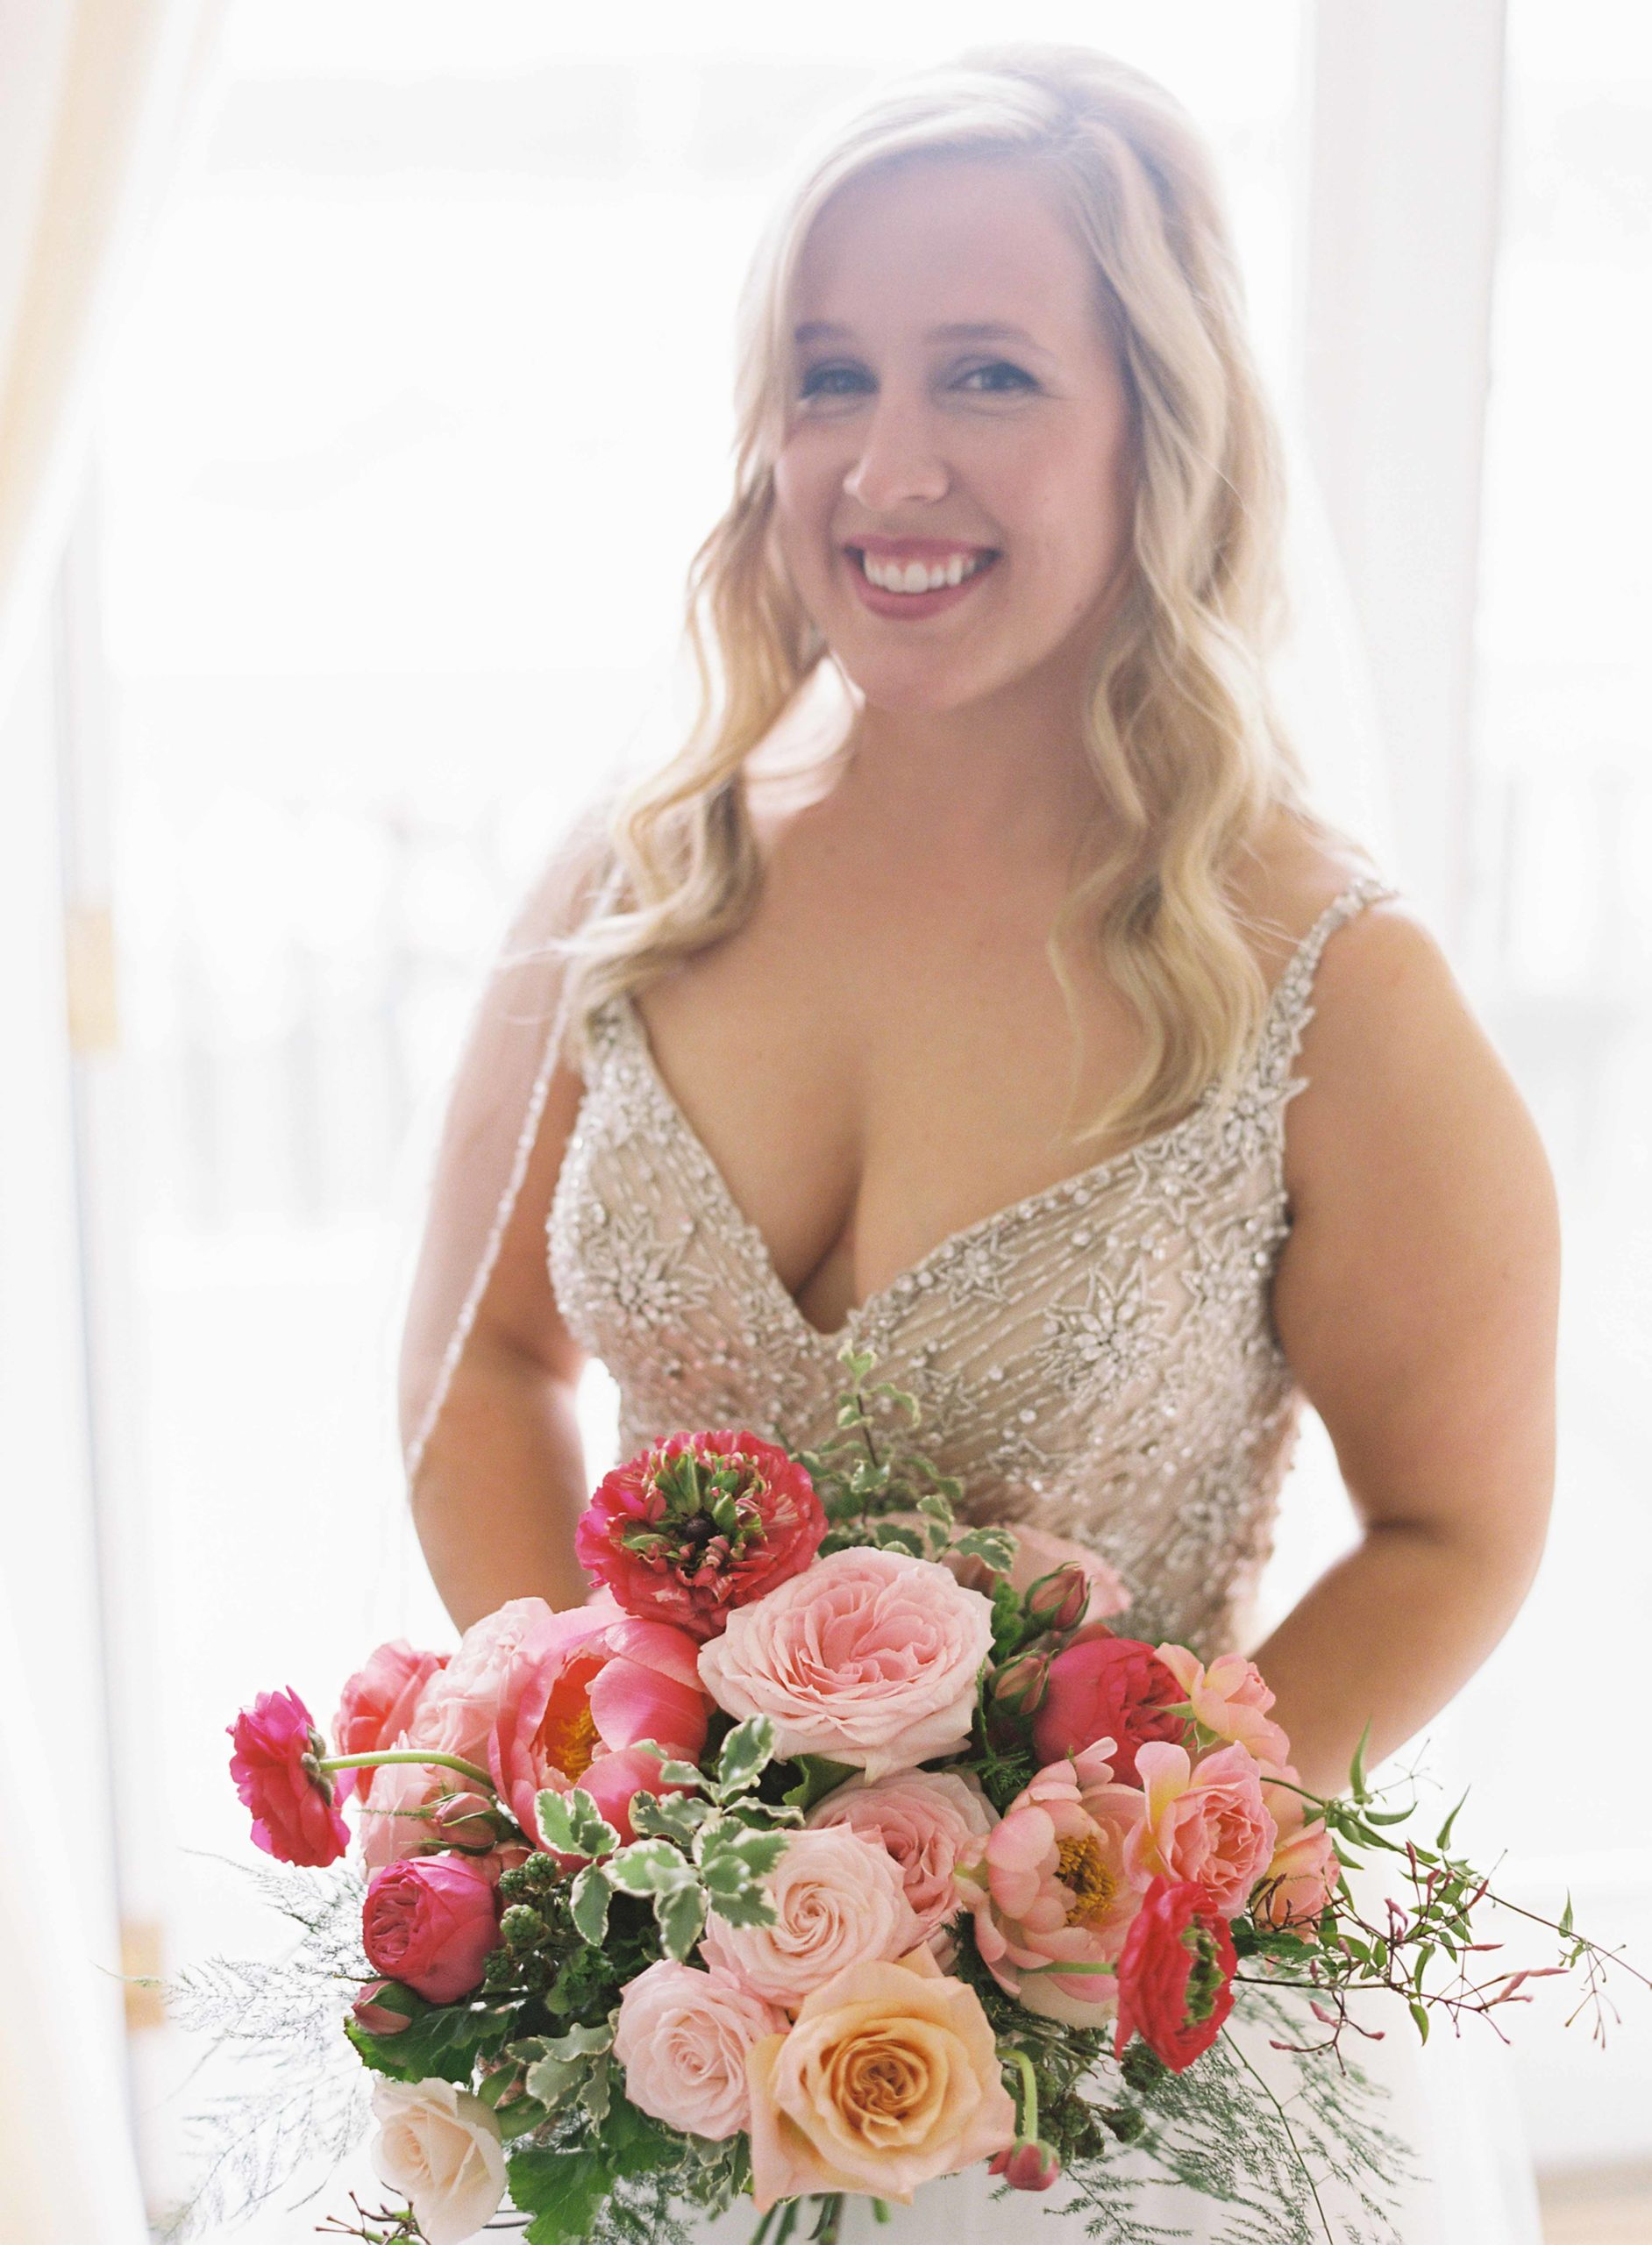 Hot pink and peach wedding bouquet held by smiling bride - Seattle Wedding Flowers by Flora Nova Design; Hot pink and peach wedding at Roche Harbor Resort